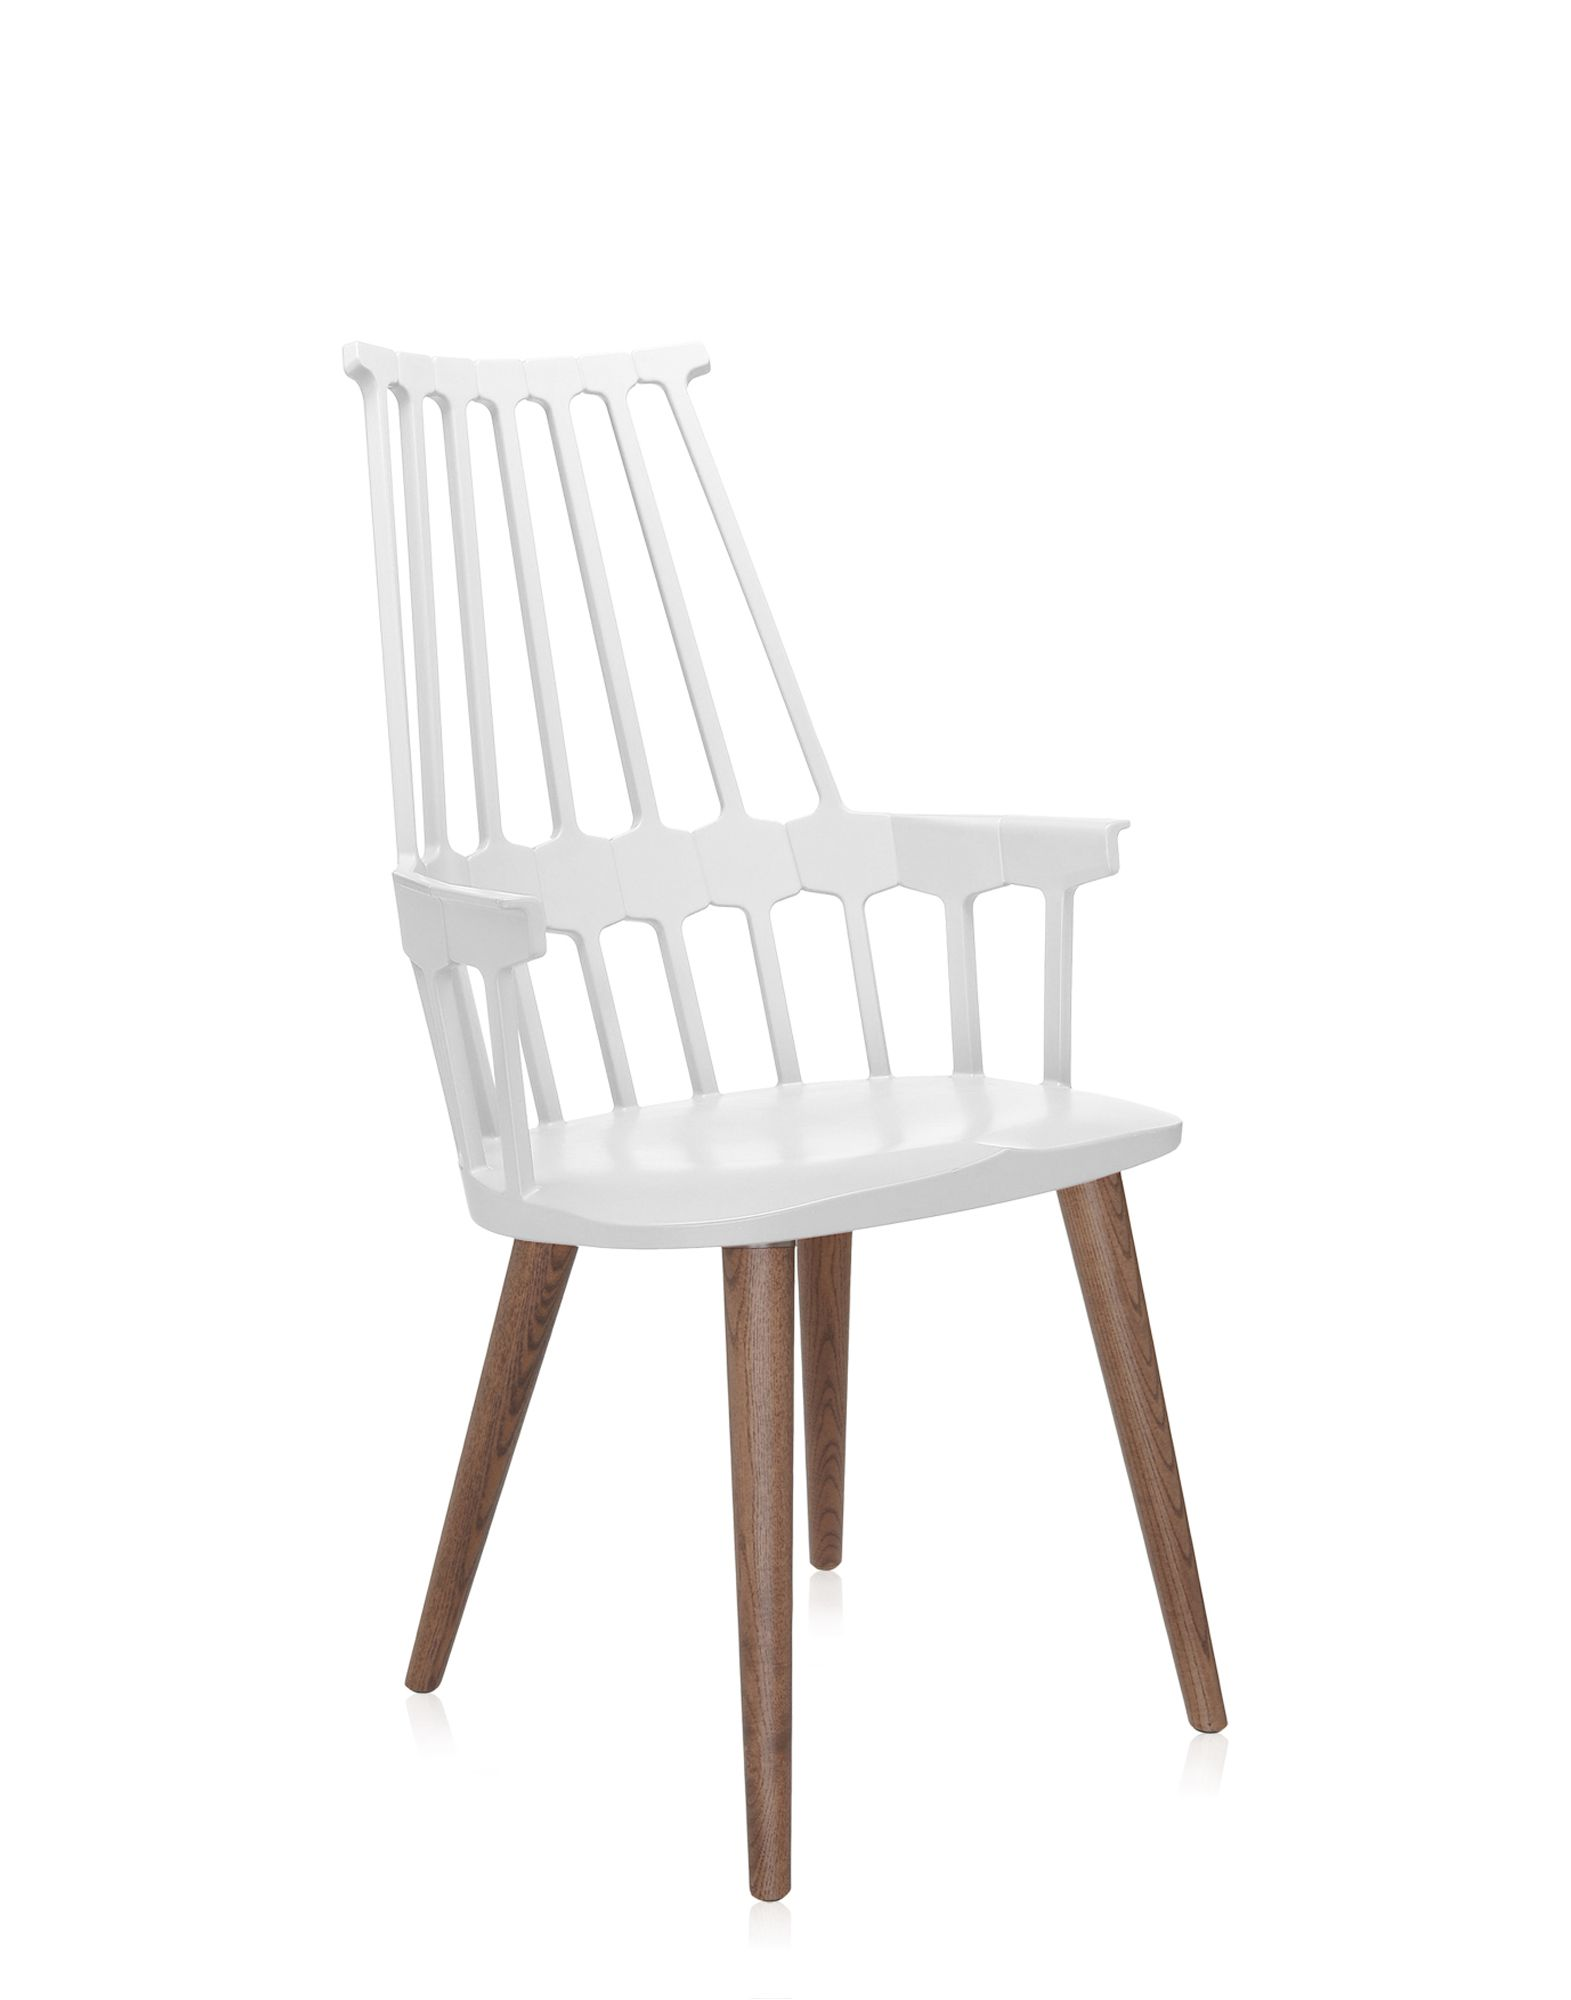 Kartell Comback poltroncina rovere bianco